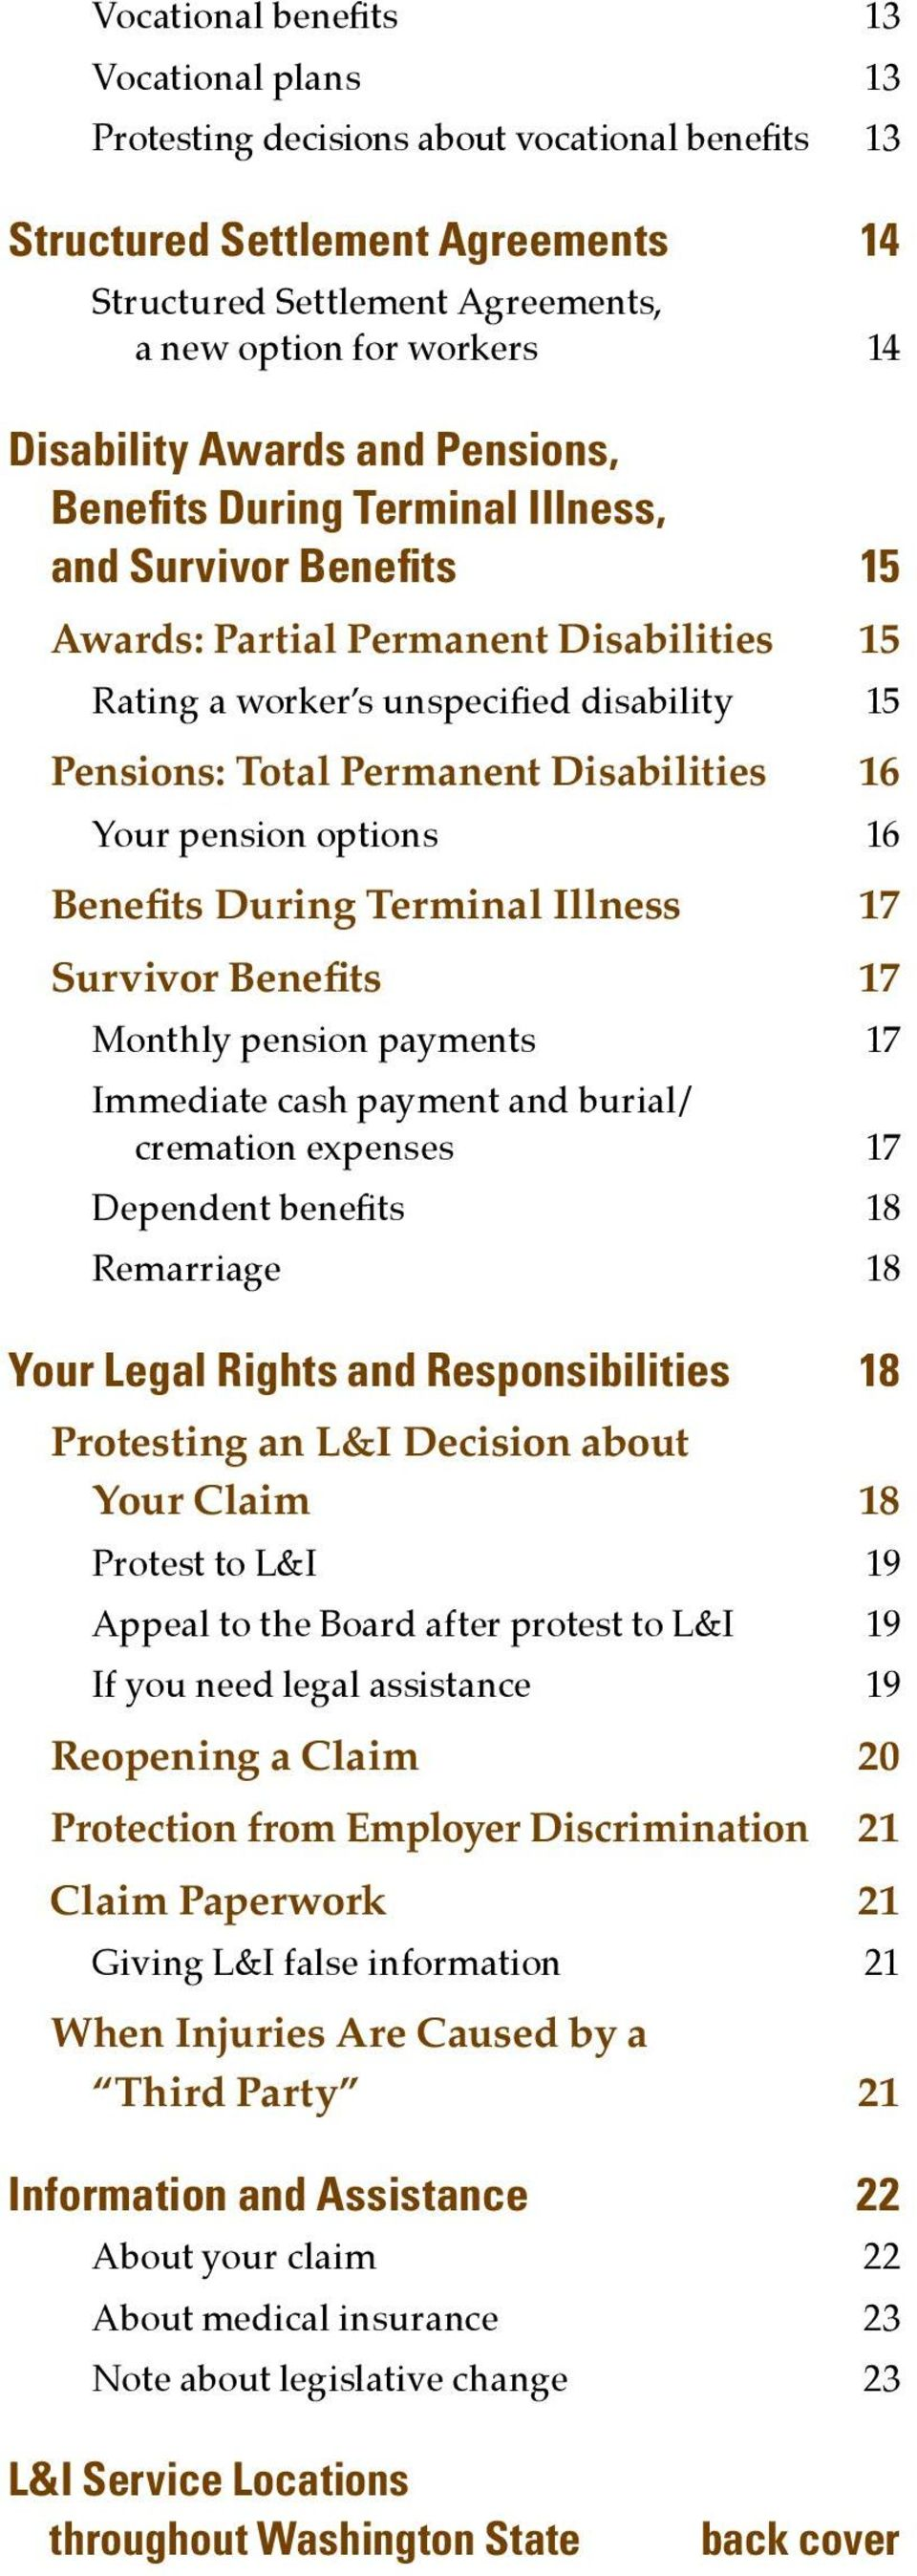 Permanent Disabilities 16 Your pension options 16 Benefits During Terminal Illness 17 Survivor Benefits 17 Monthly pension payments 17 Immediate cash payment and burial/ cremation expenses 17